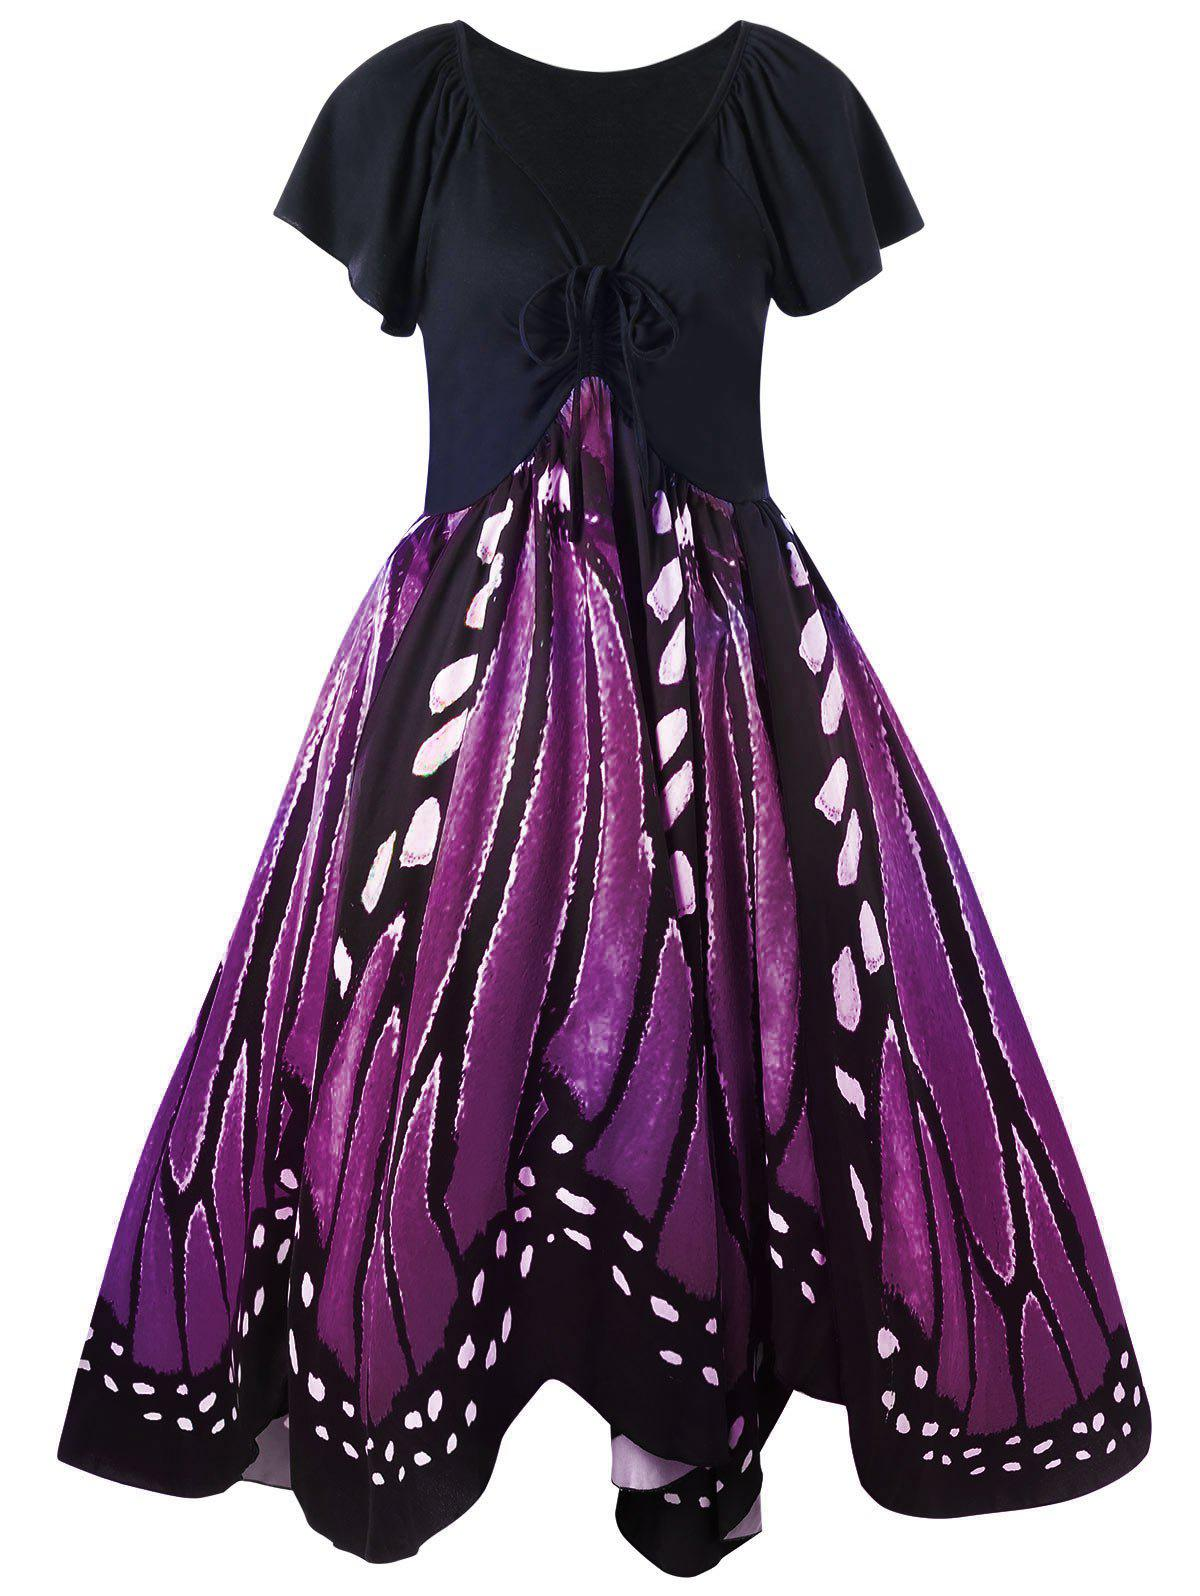 Plus Size Low Cut Butterfly Print Swing DressWOMEN<br><br>Size: 3XL; Color: PURPLE; Style: Vintage; Material: Polyester,Spandex; Silhouette: A-Line; Dresses Length: Knee-Length; Neckline: Plunging Neck; Sleeve Length: Short Sleeves; Pattern Type: Butterfly; With Belt: No; Season: Fall,Spring; Weight: 0.3700kg; Package Contents: 1 x Dress;